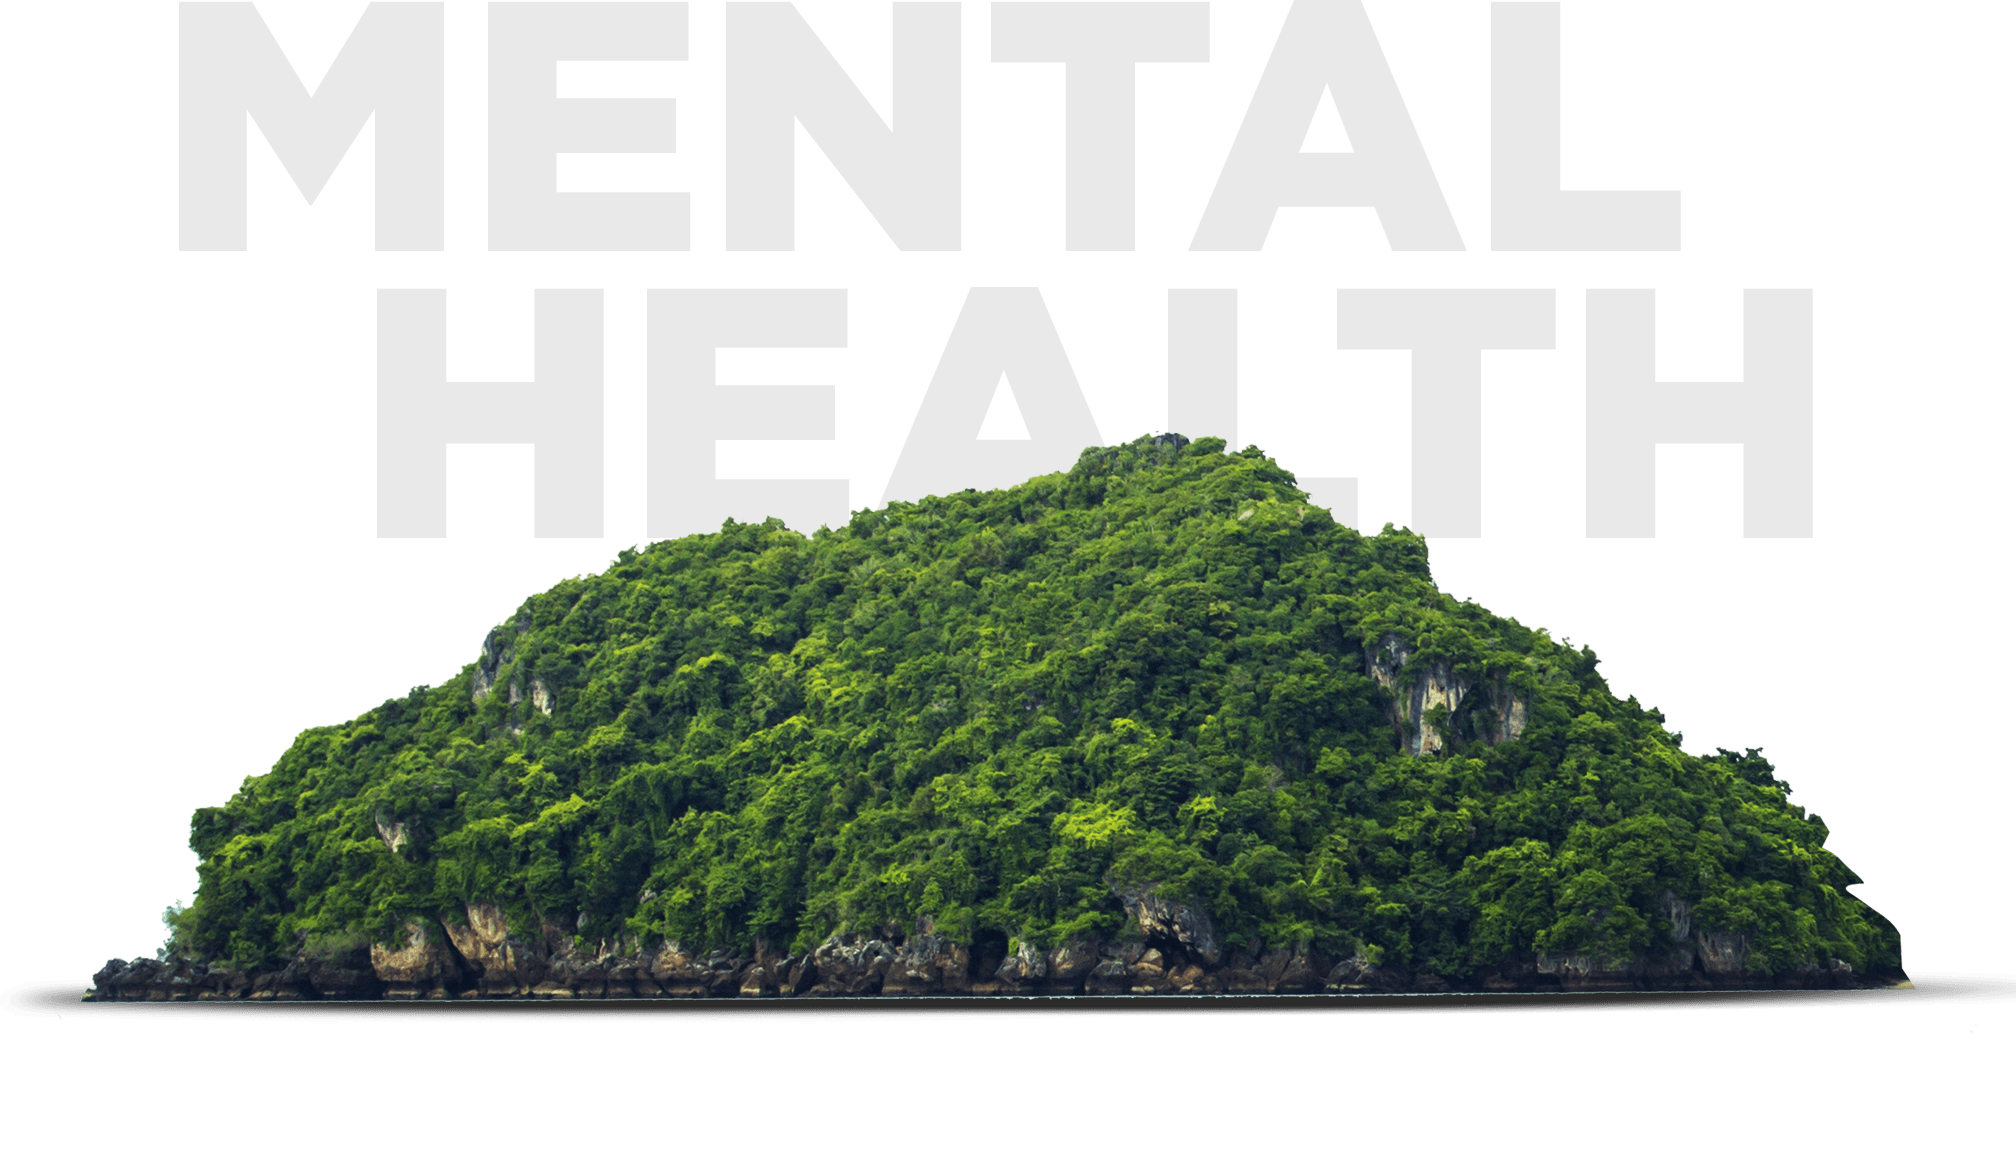 Mental health lebanon